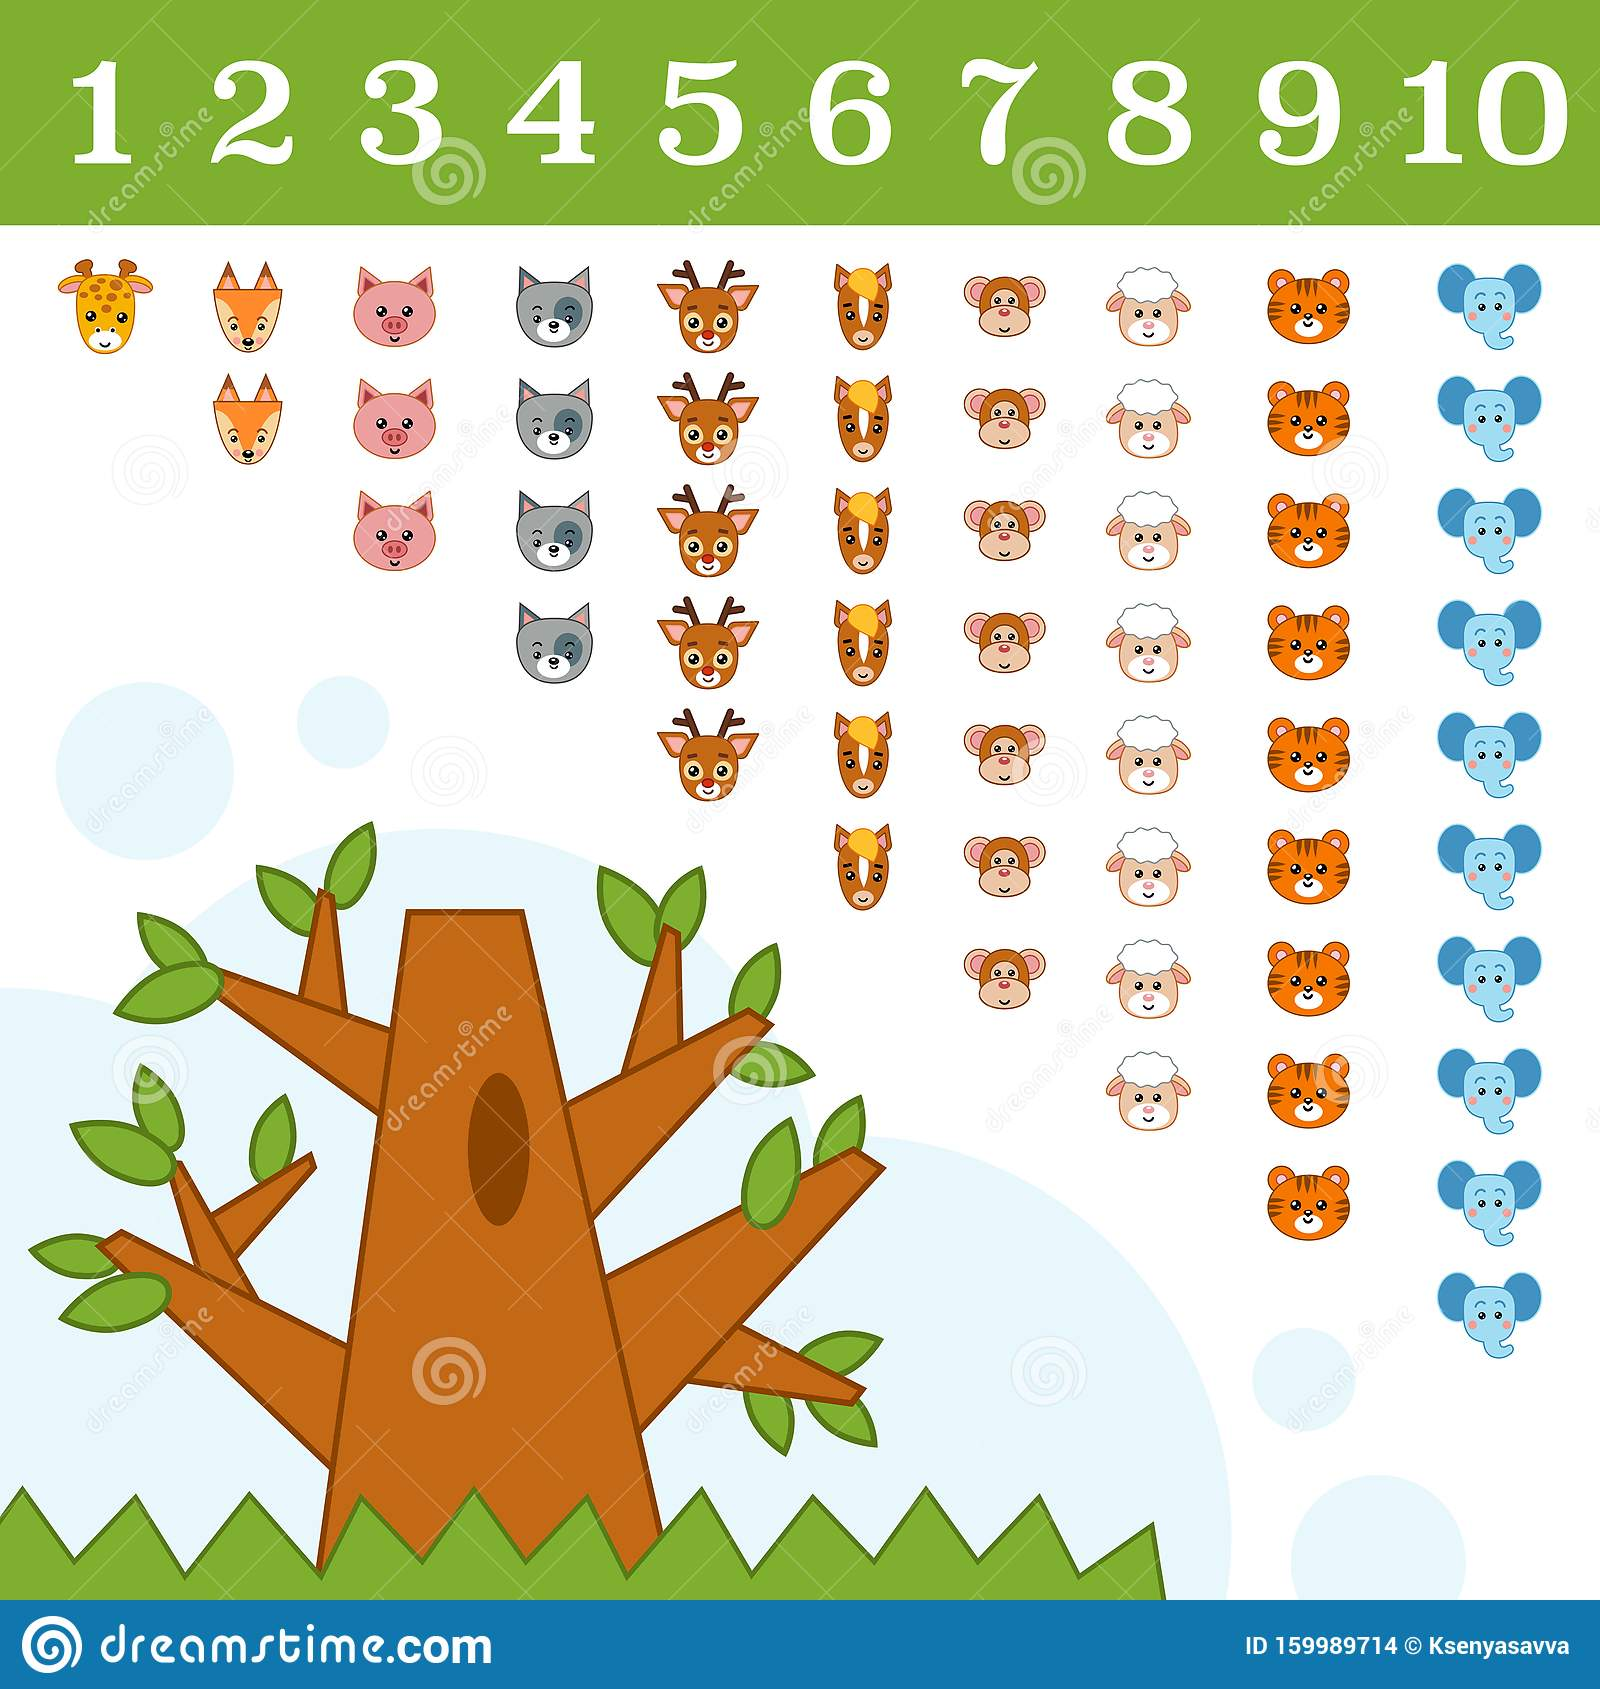 Educational Poster For Children About Numbers From One To